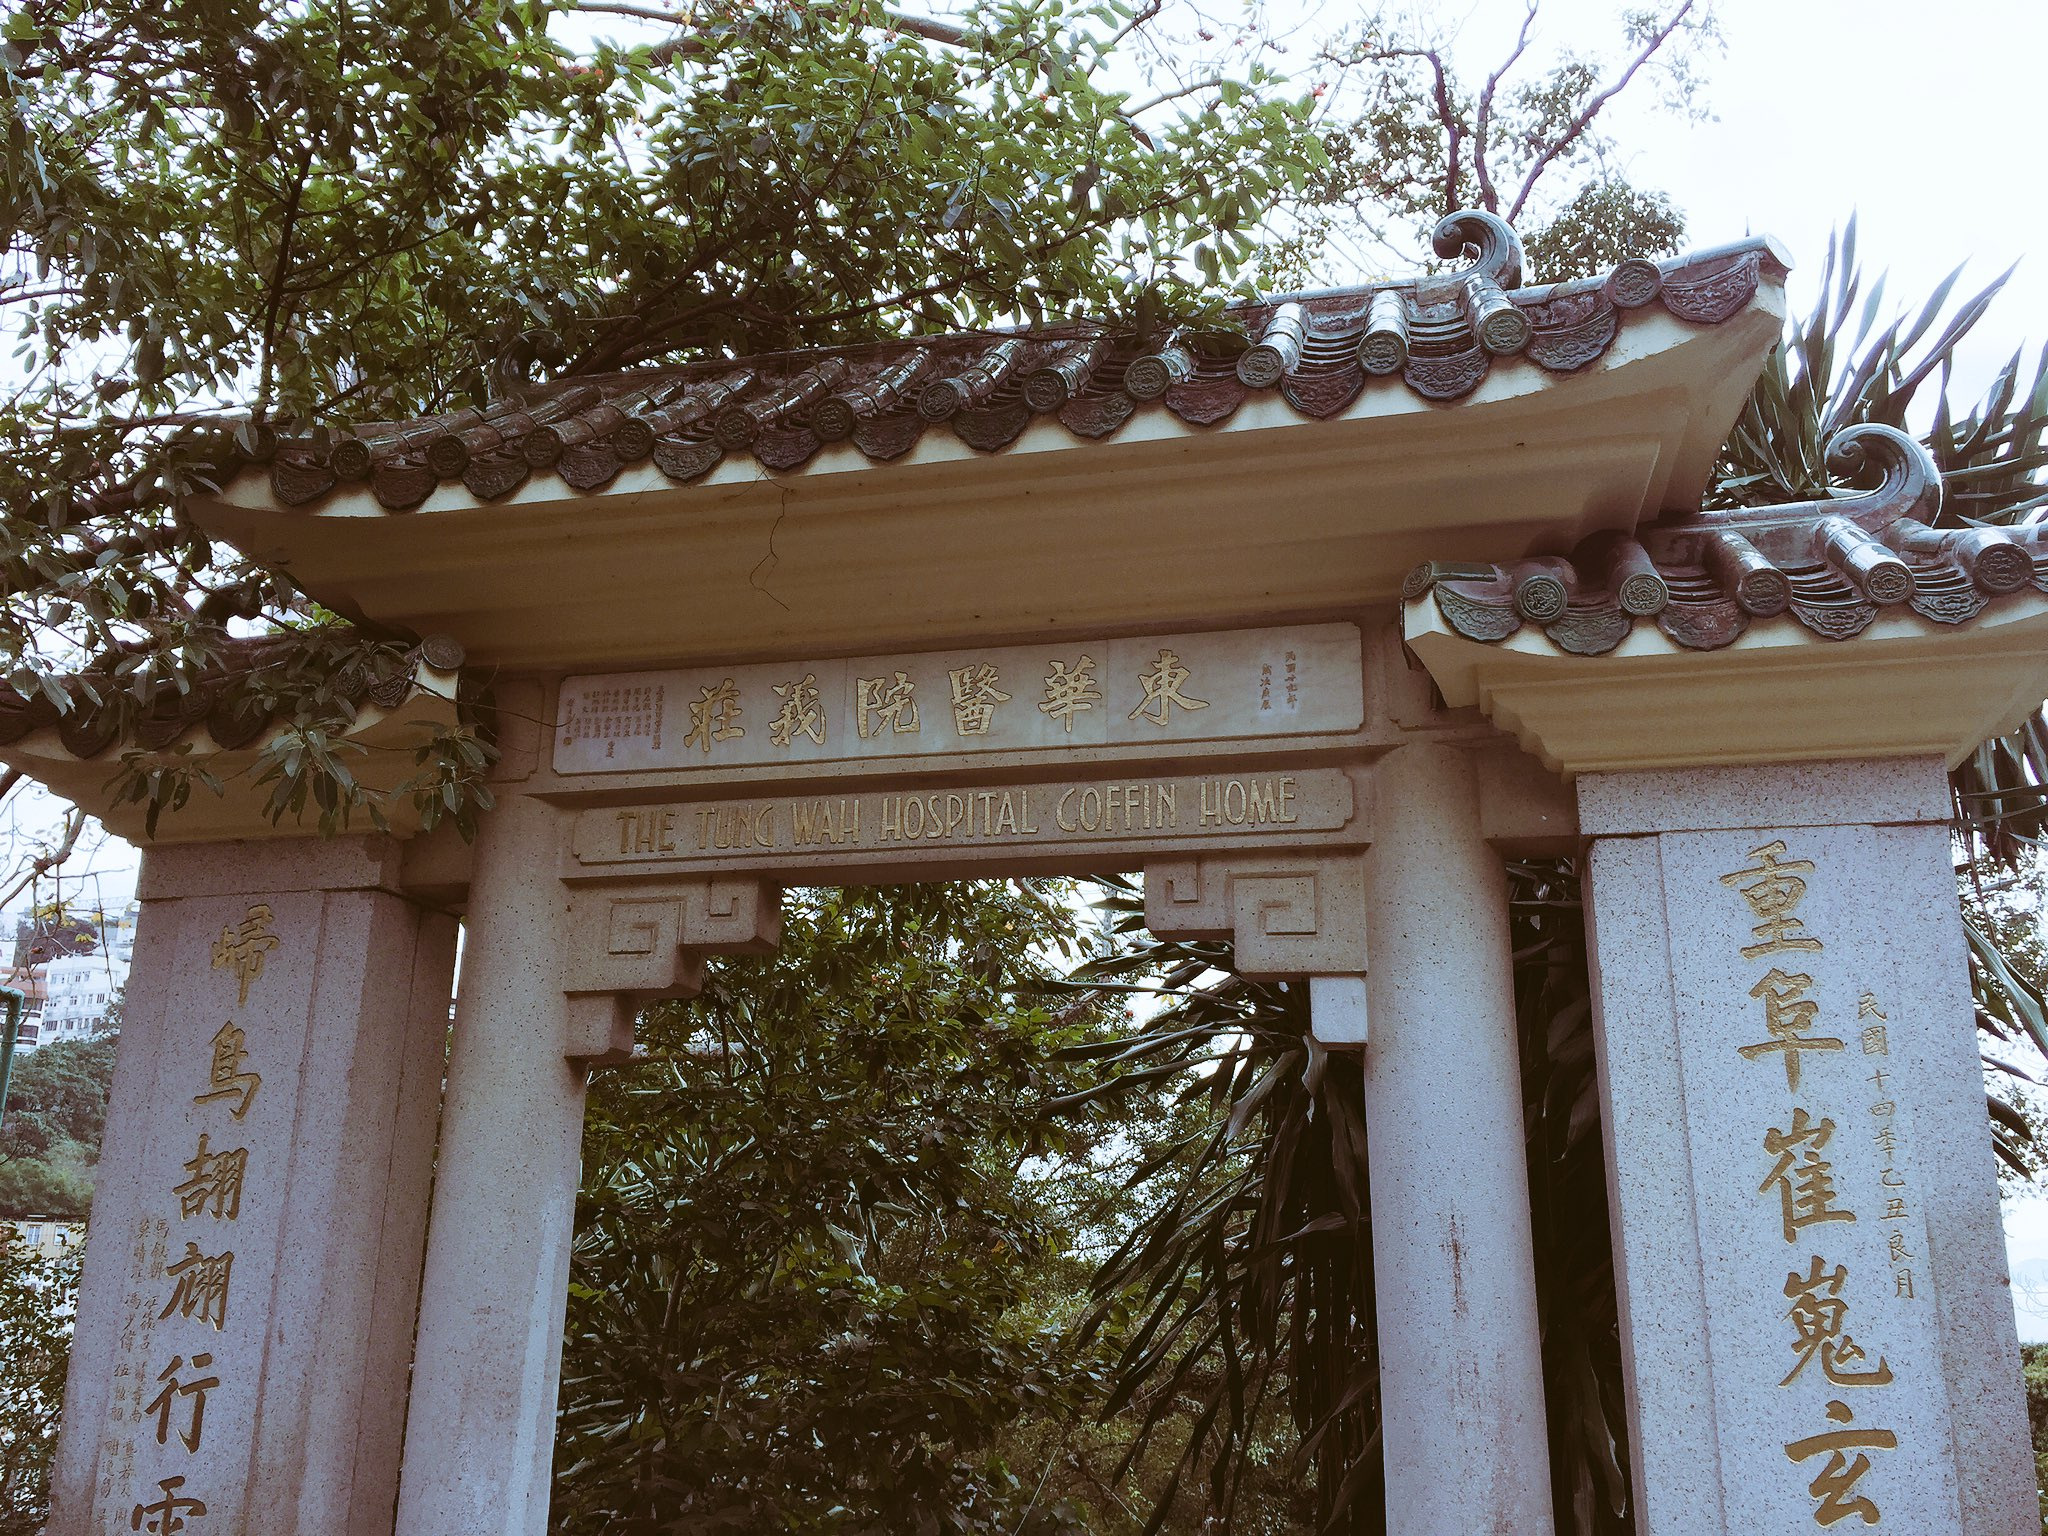 At the Tung Wah Coffin Home, which was central in repatriation of bones from overseas Chinese communities. #cahht17 https://t.co/ZmwJhdja8u